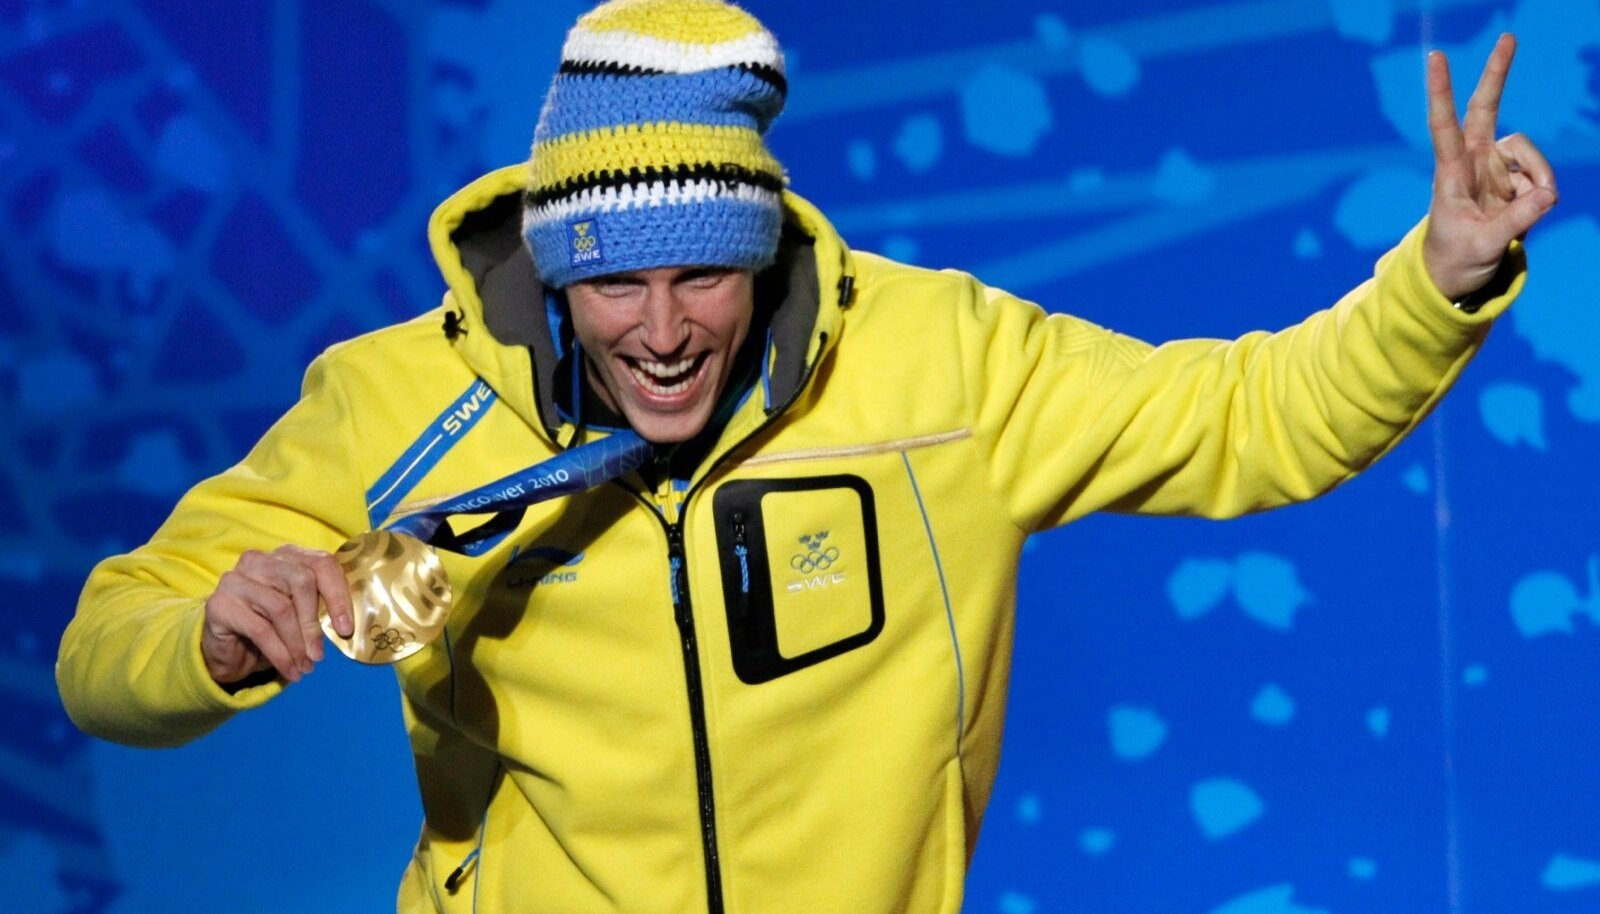 Gold medallist Ferry celebrates during the medal ceremony for the men's 12.5km pursuit biathlon competiton at the Vancouver 2010 Winter Olympics